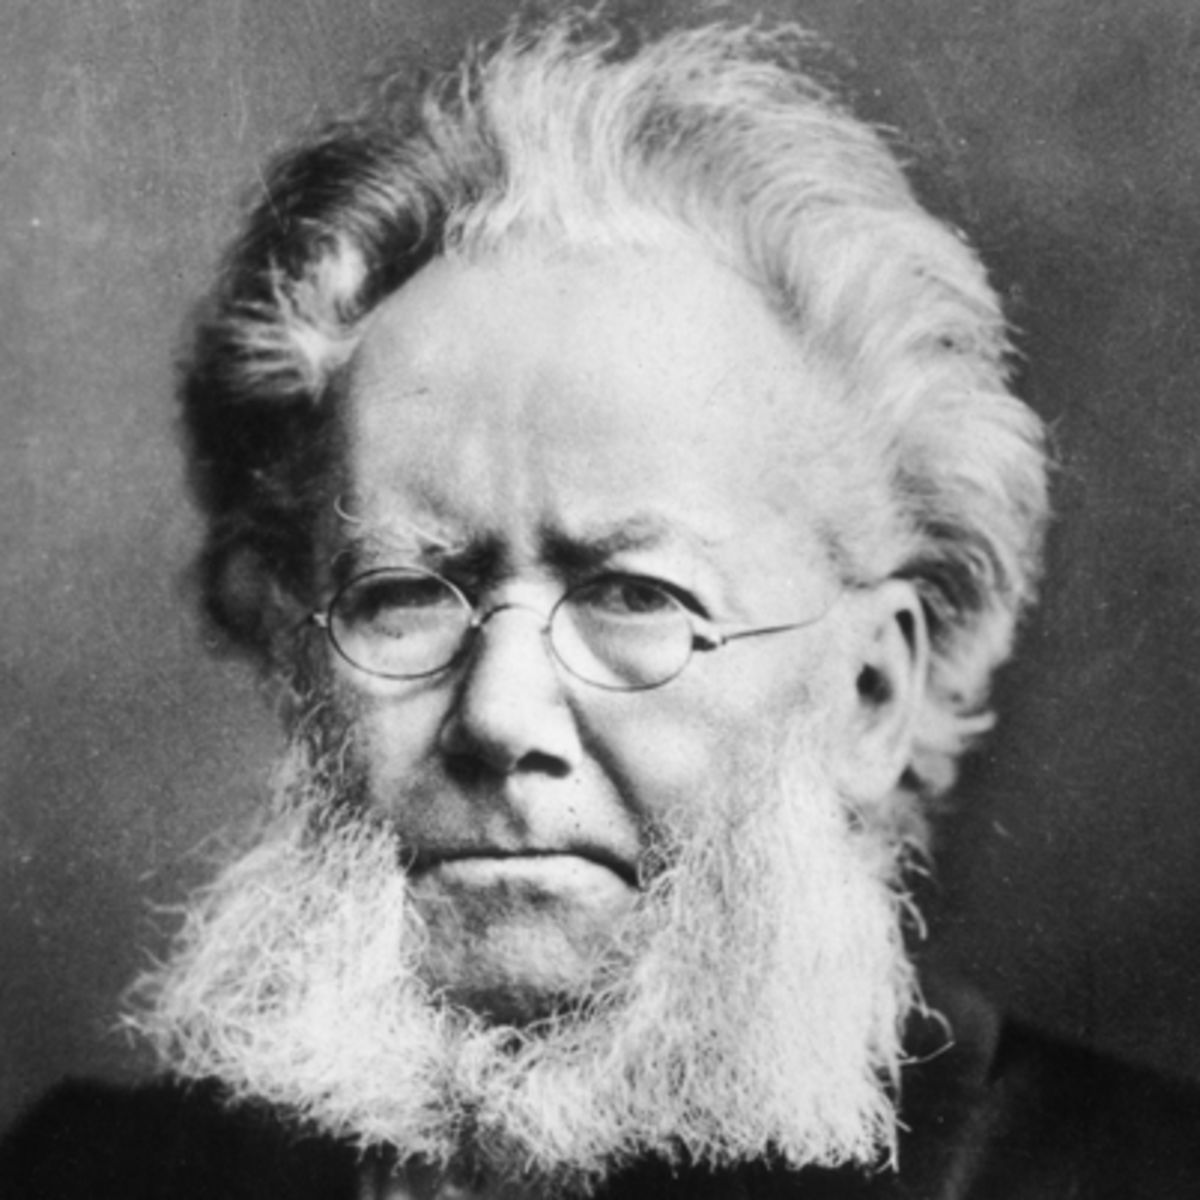 Trace Norwegian playwright Henrik Ibsen's writing career, from his exile to his success with the plays A Doll's House and Hedda Gabler, on Biography.com.